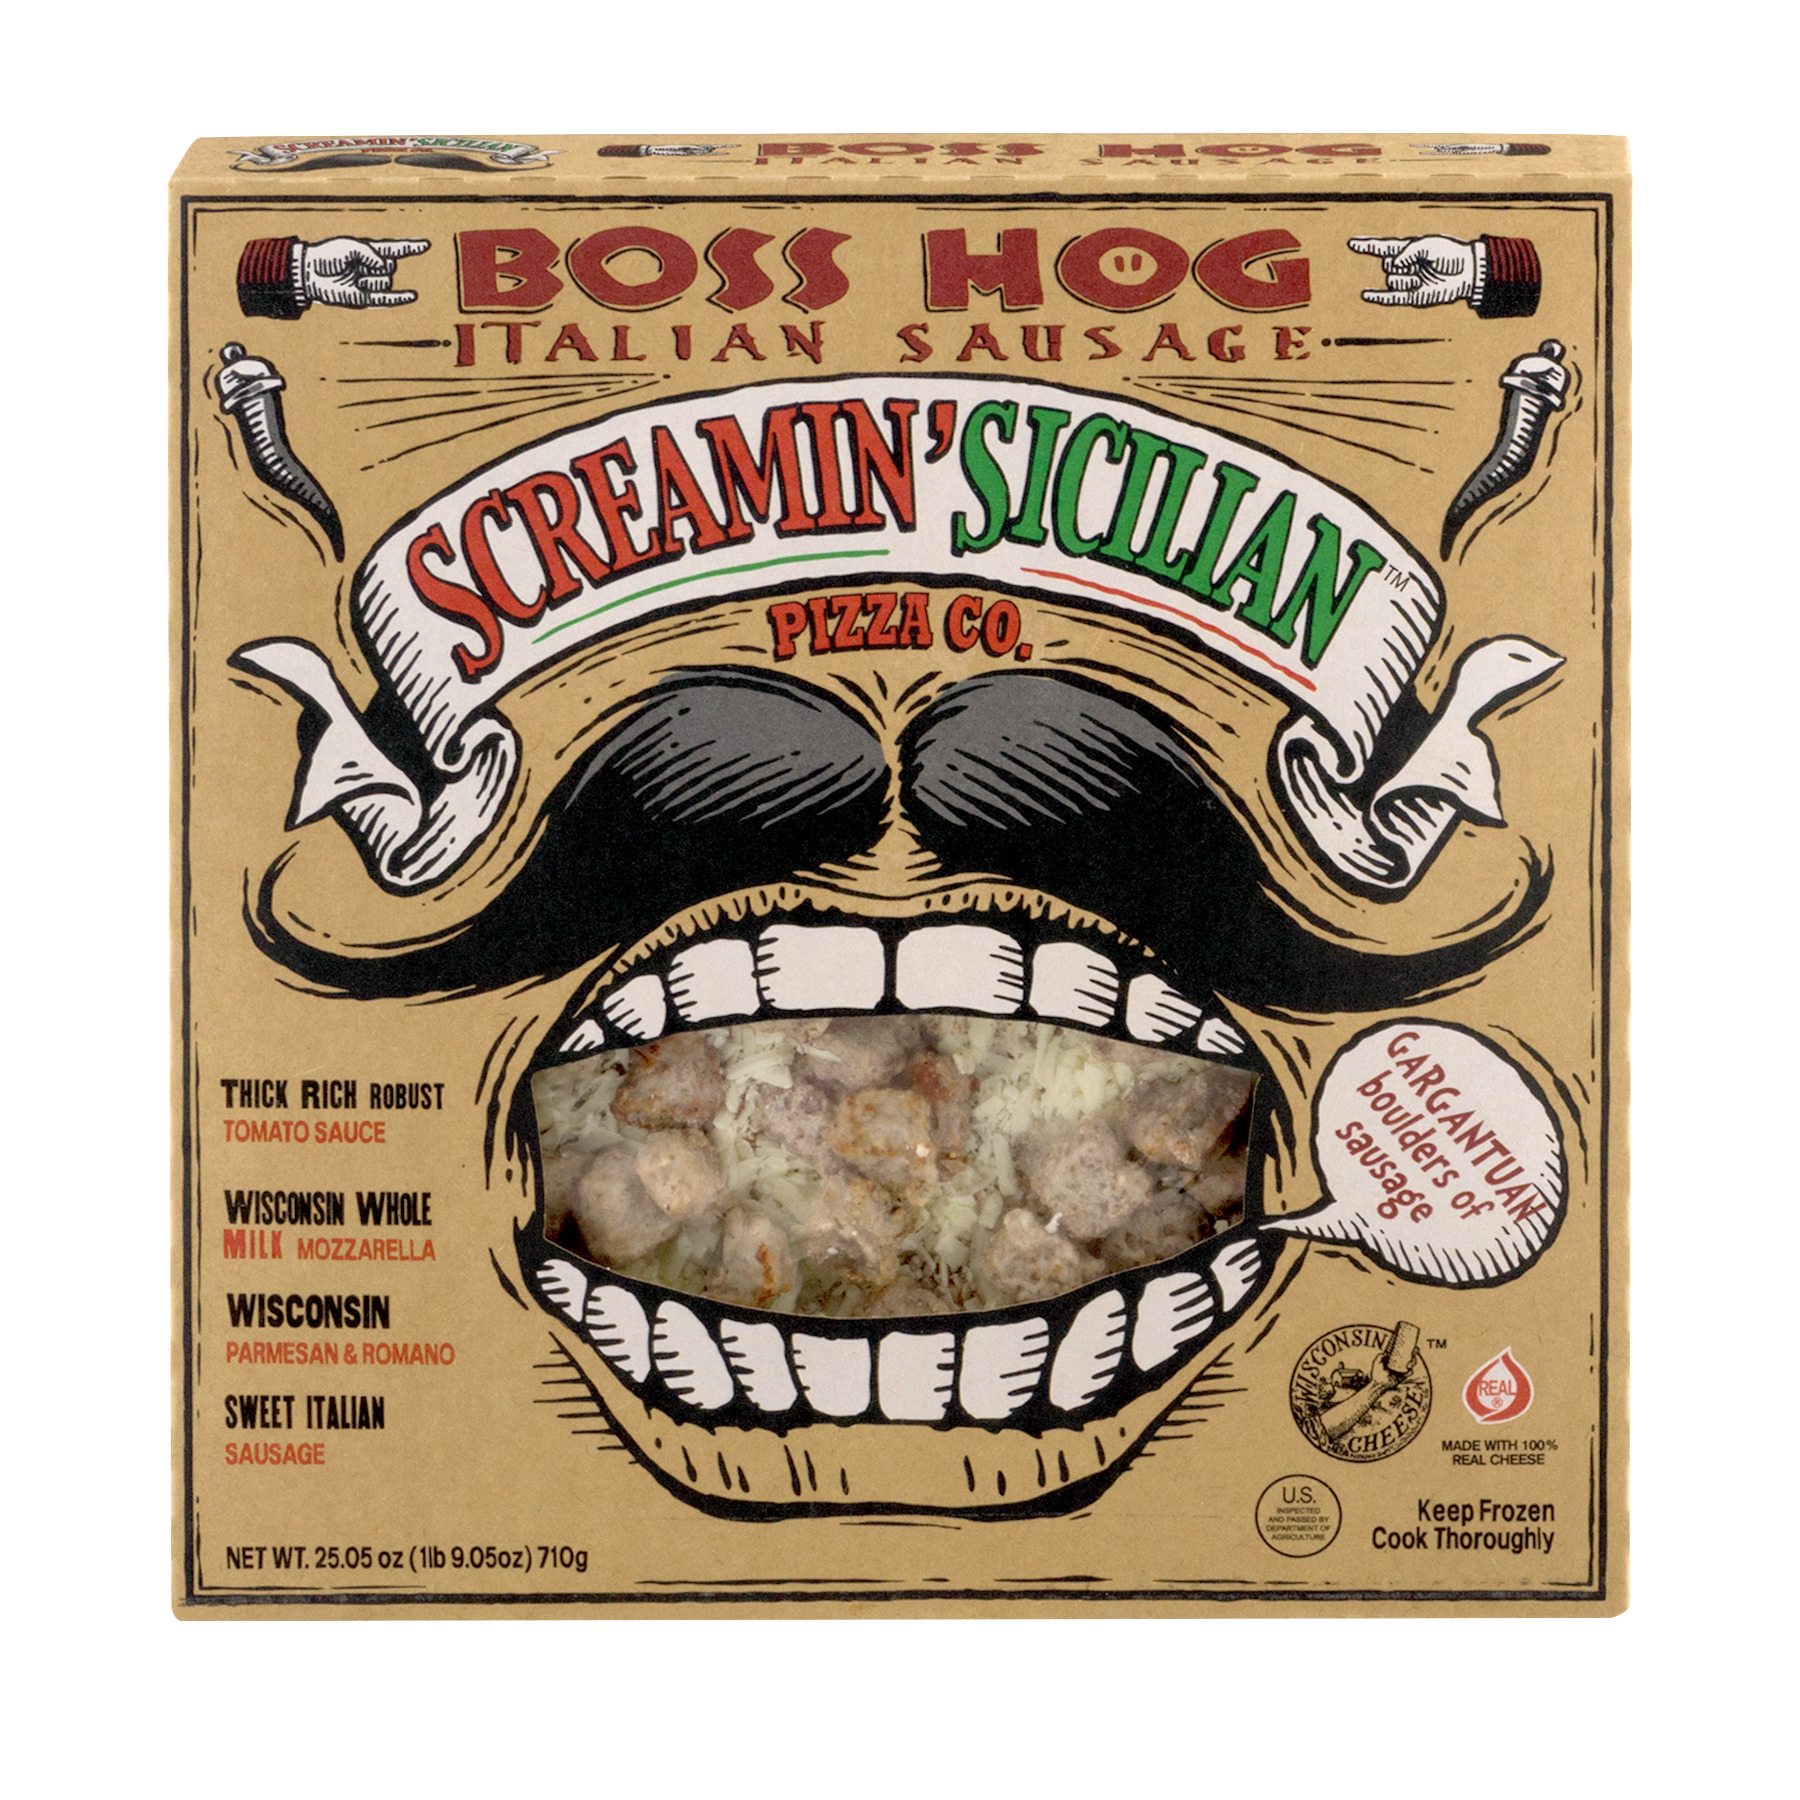 Screamin' Sicilian Pizza Co. Boss Hog Italian Sausage, 25.05 OZ